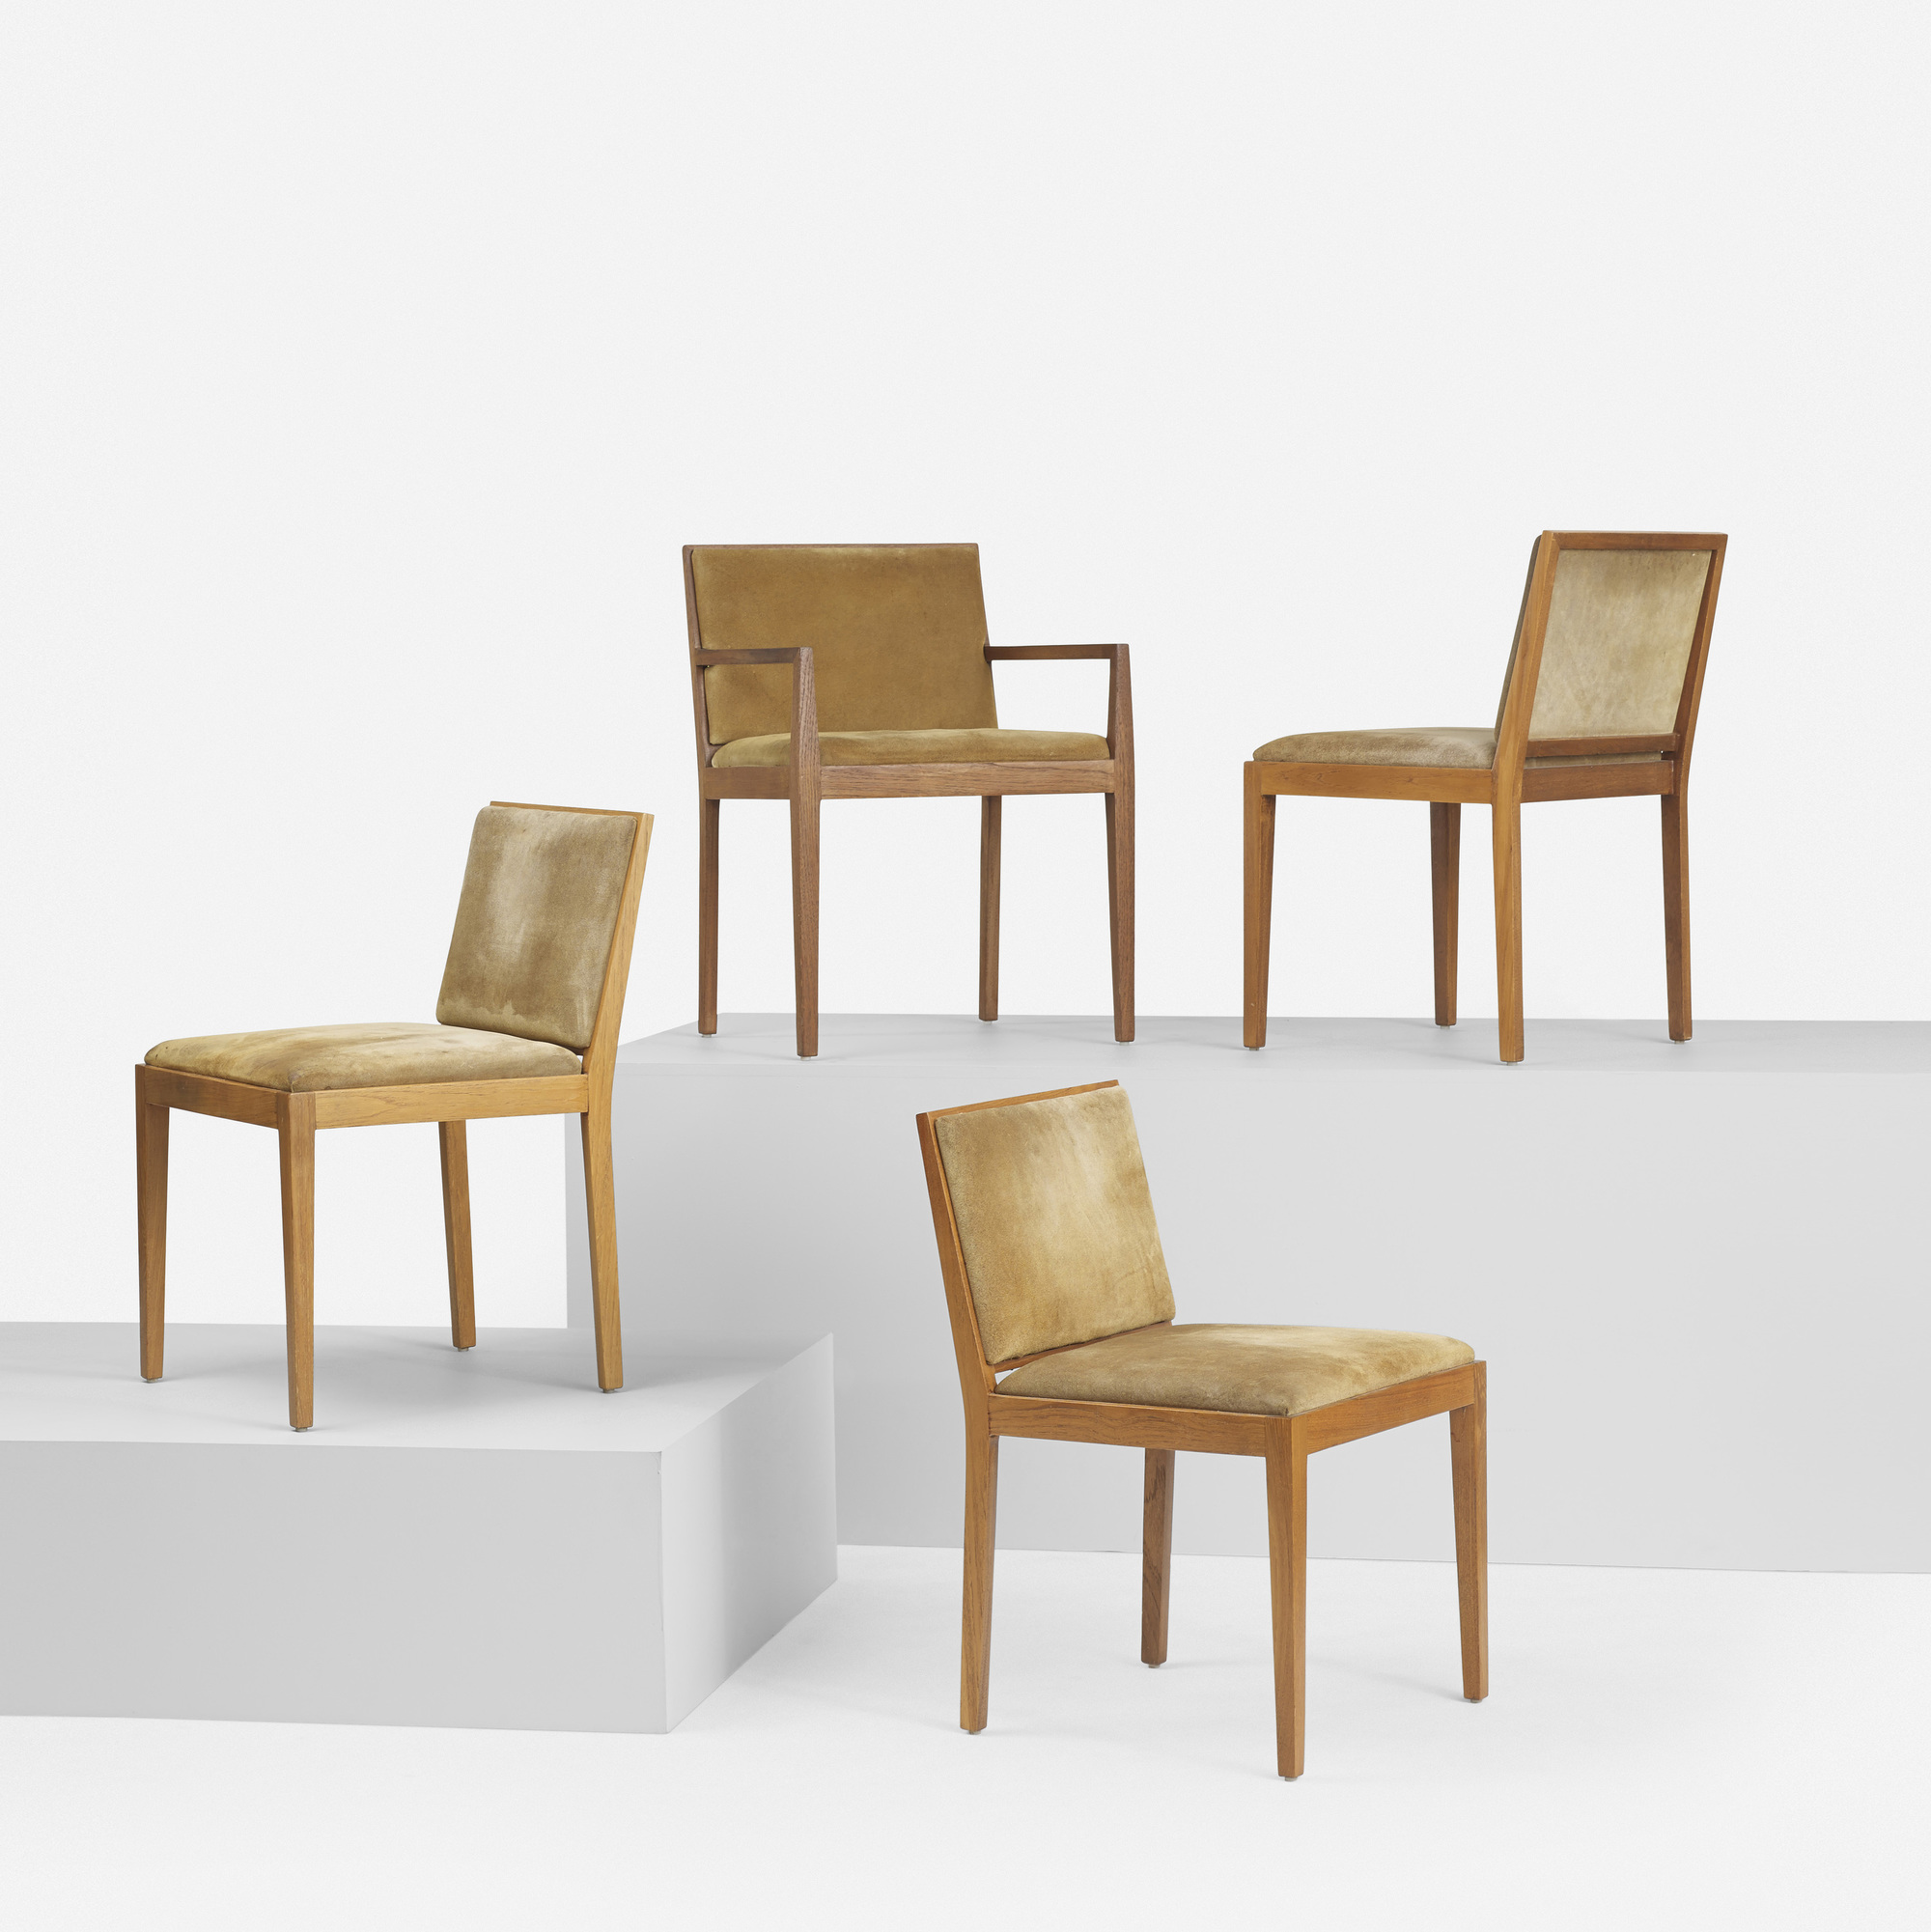 154: Ludwig Mies van der Rohe / set of eight dining chairs from 860 Lake Shore Drive, Chicago (2 of 6)